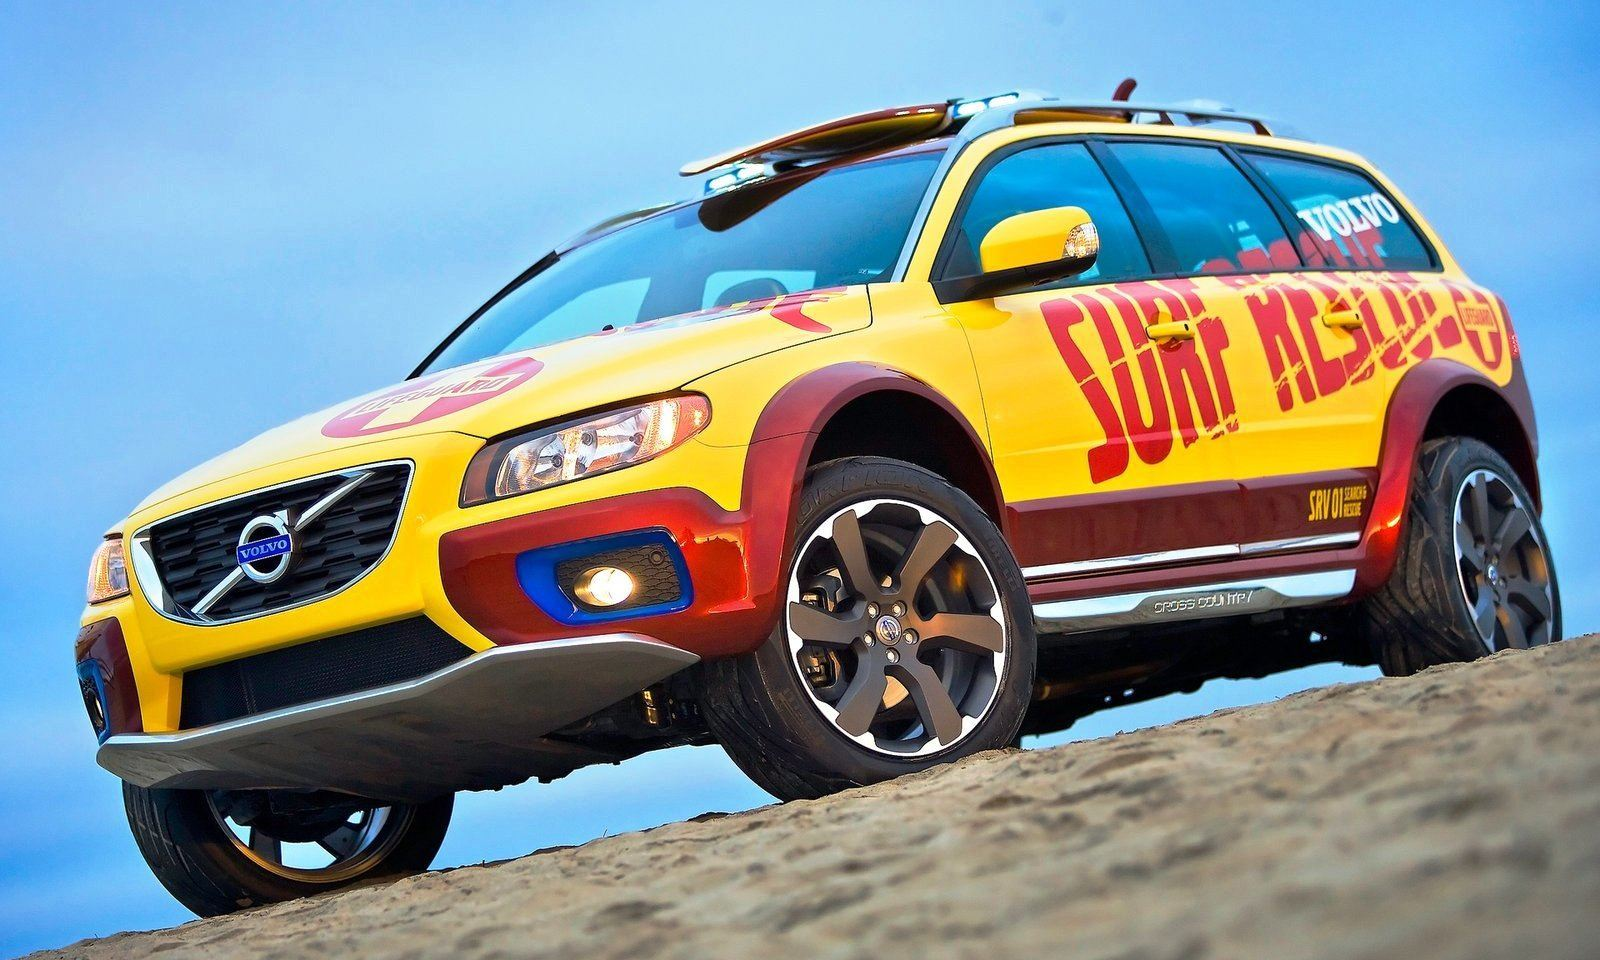 2005 Volvo XC70 AT and 2007 XC70 Surf Rescue are California Surf'n'Turf Dreams 15